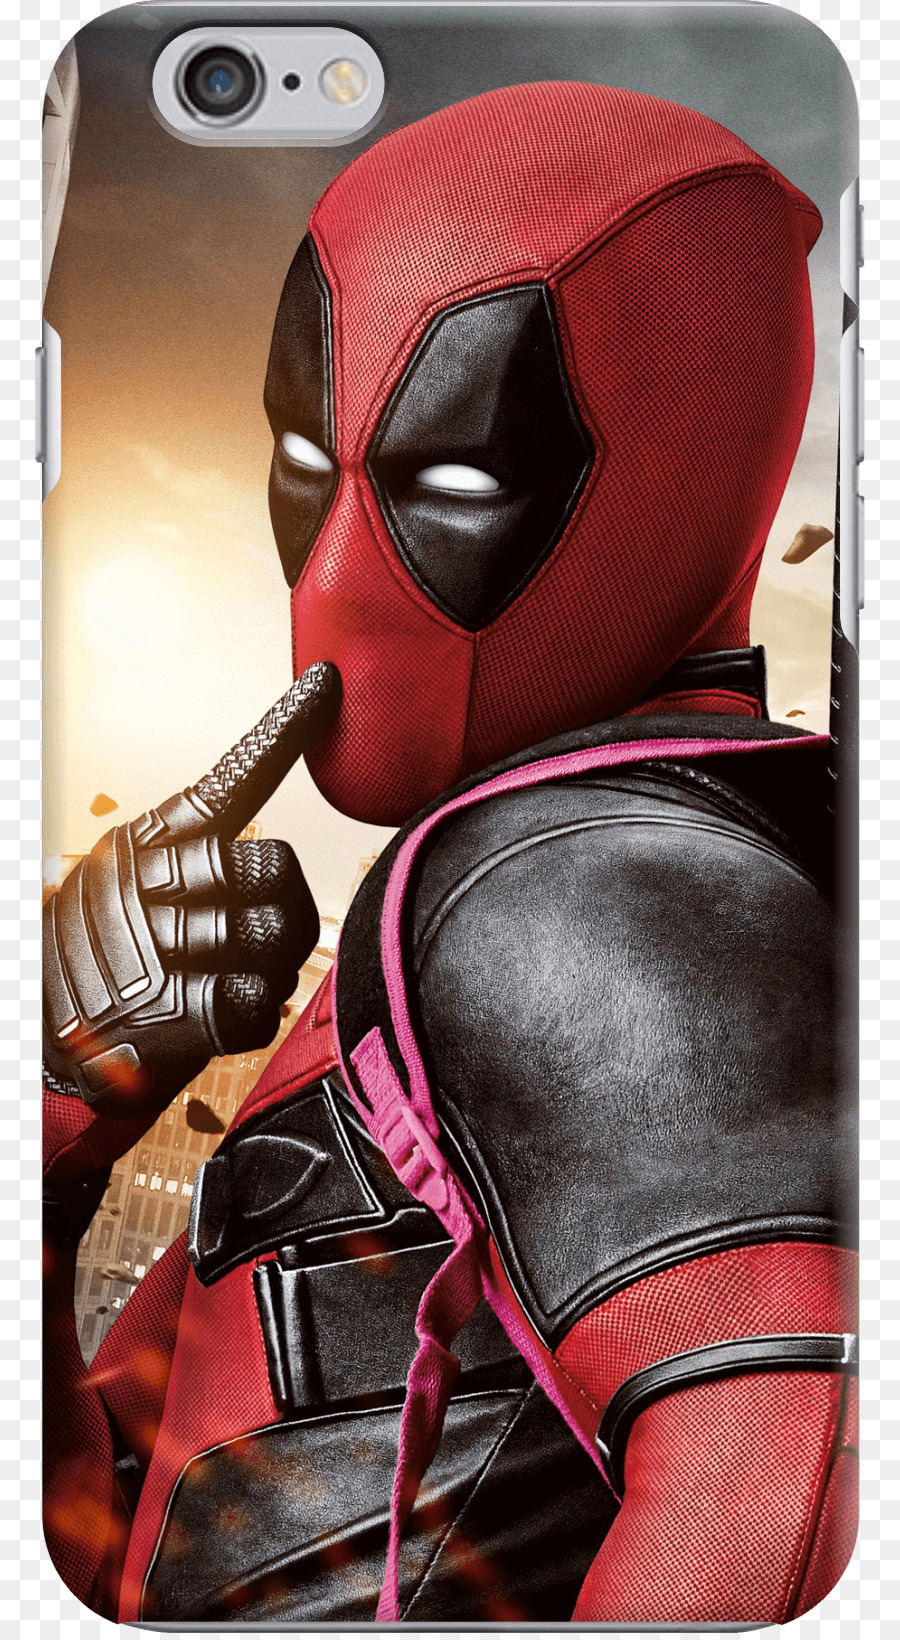 Deadpool Desktop Wallpaper 4k Resolution Mobile Phones Wallpaper